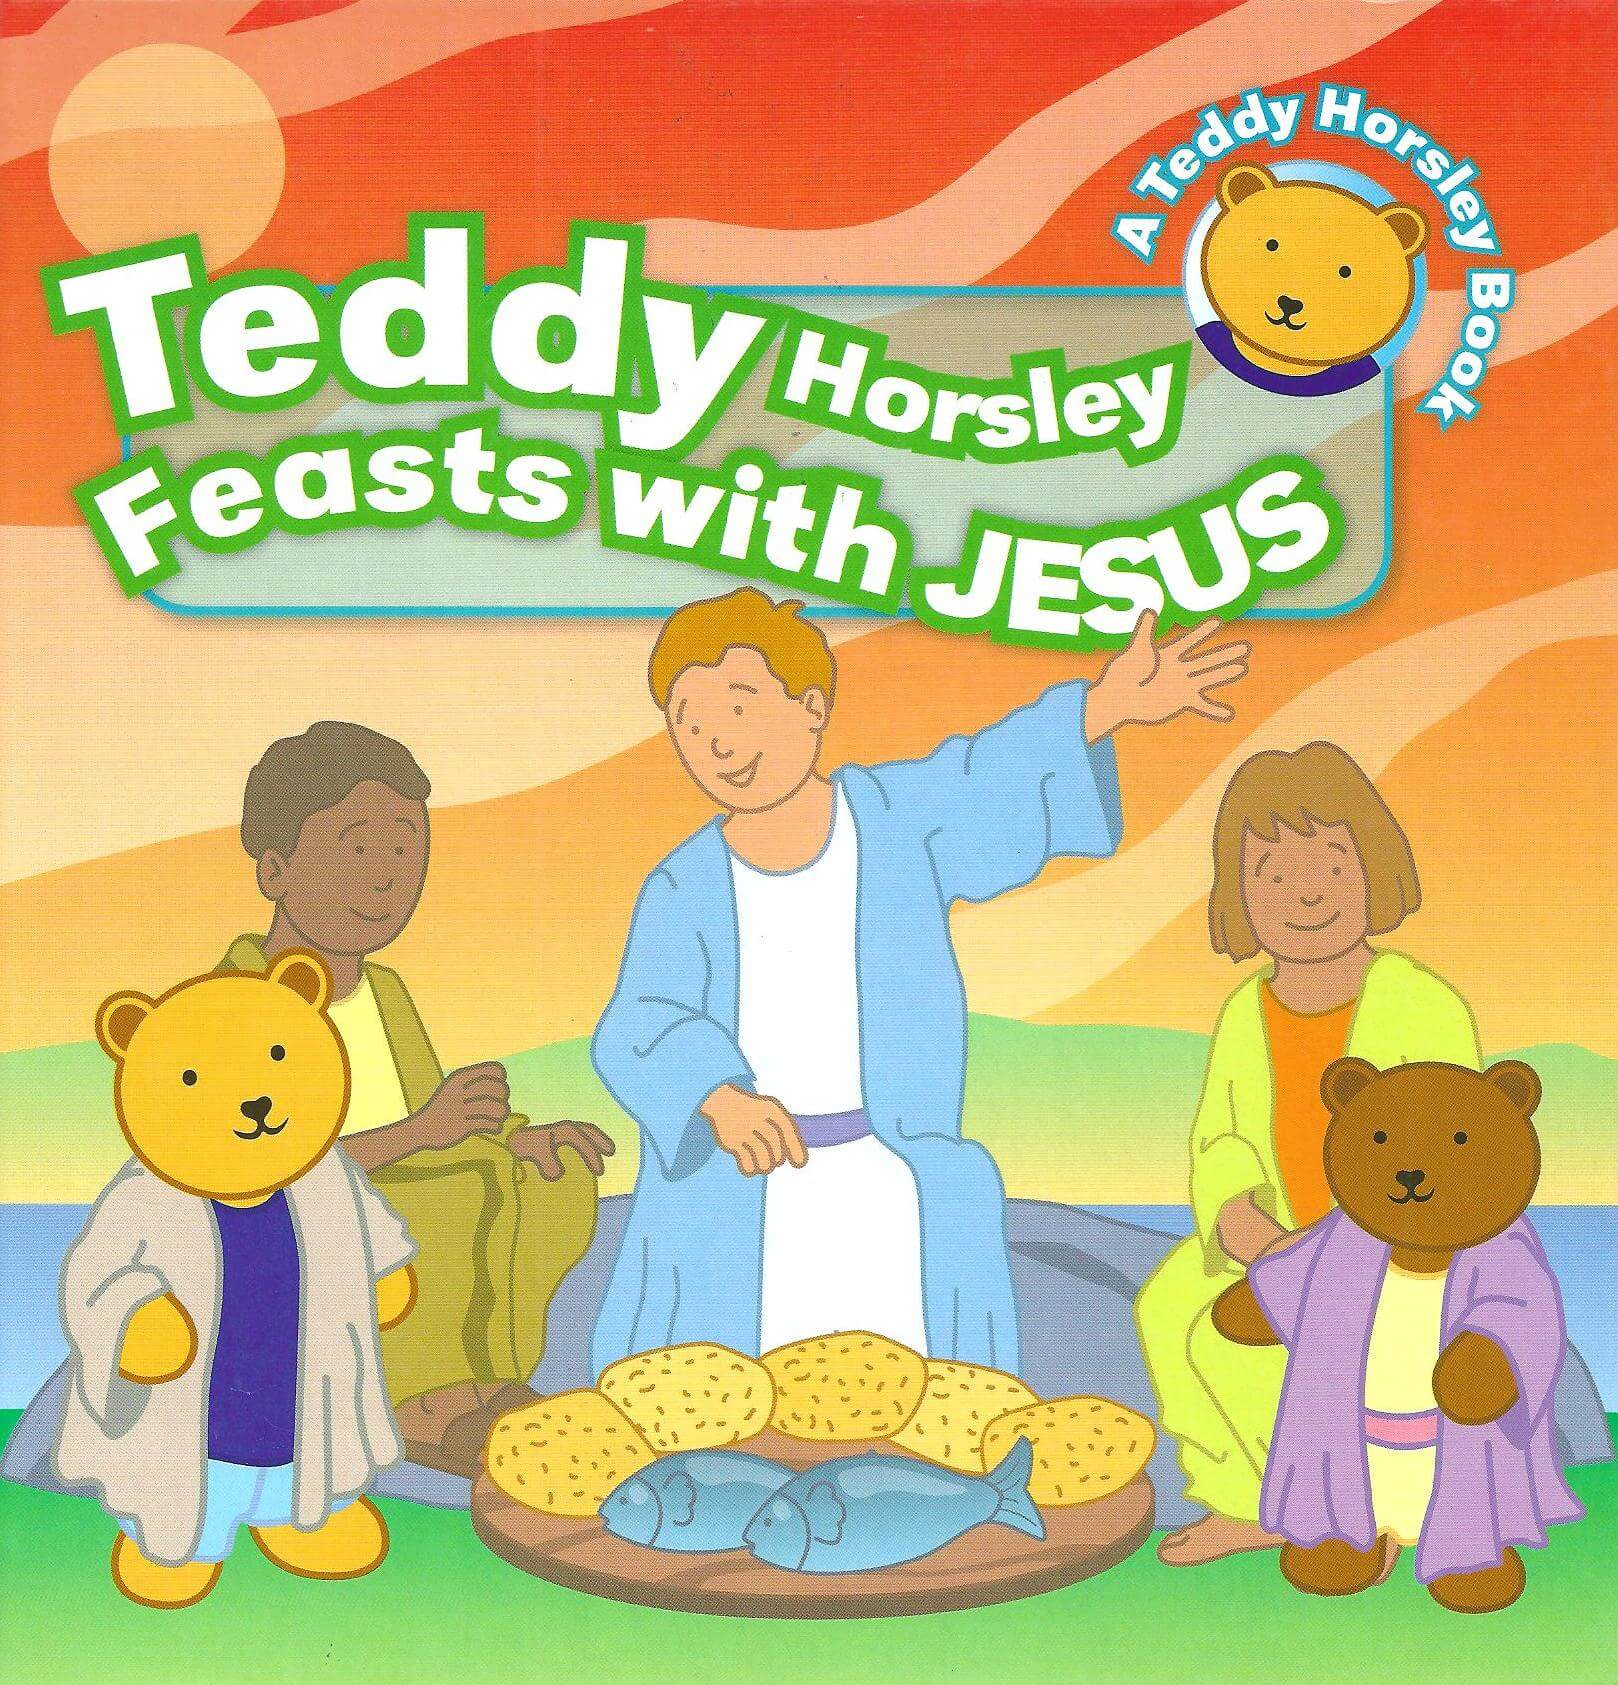 Teddy Horsley feasts with Jesus